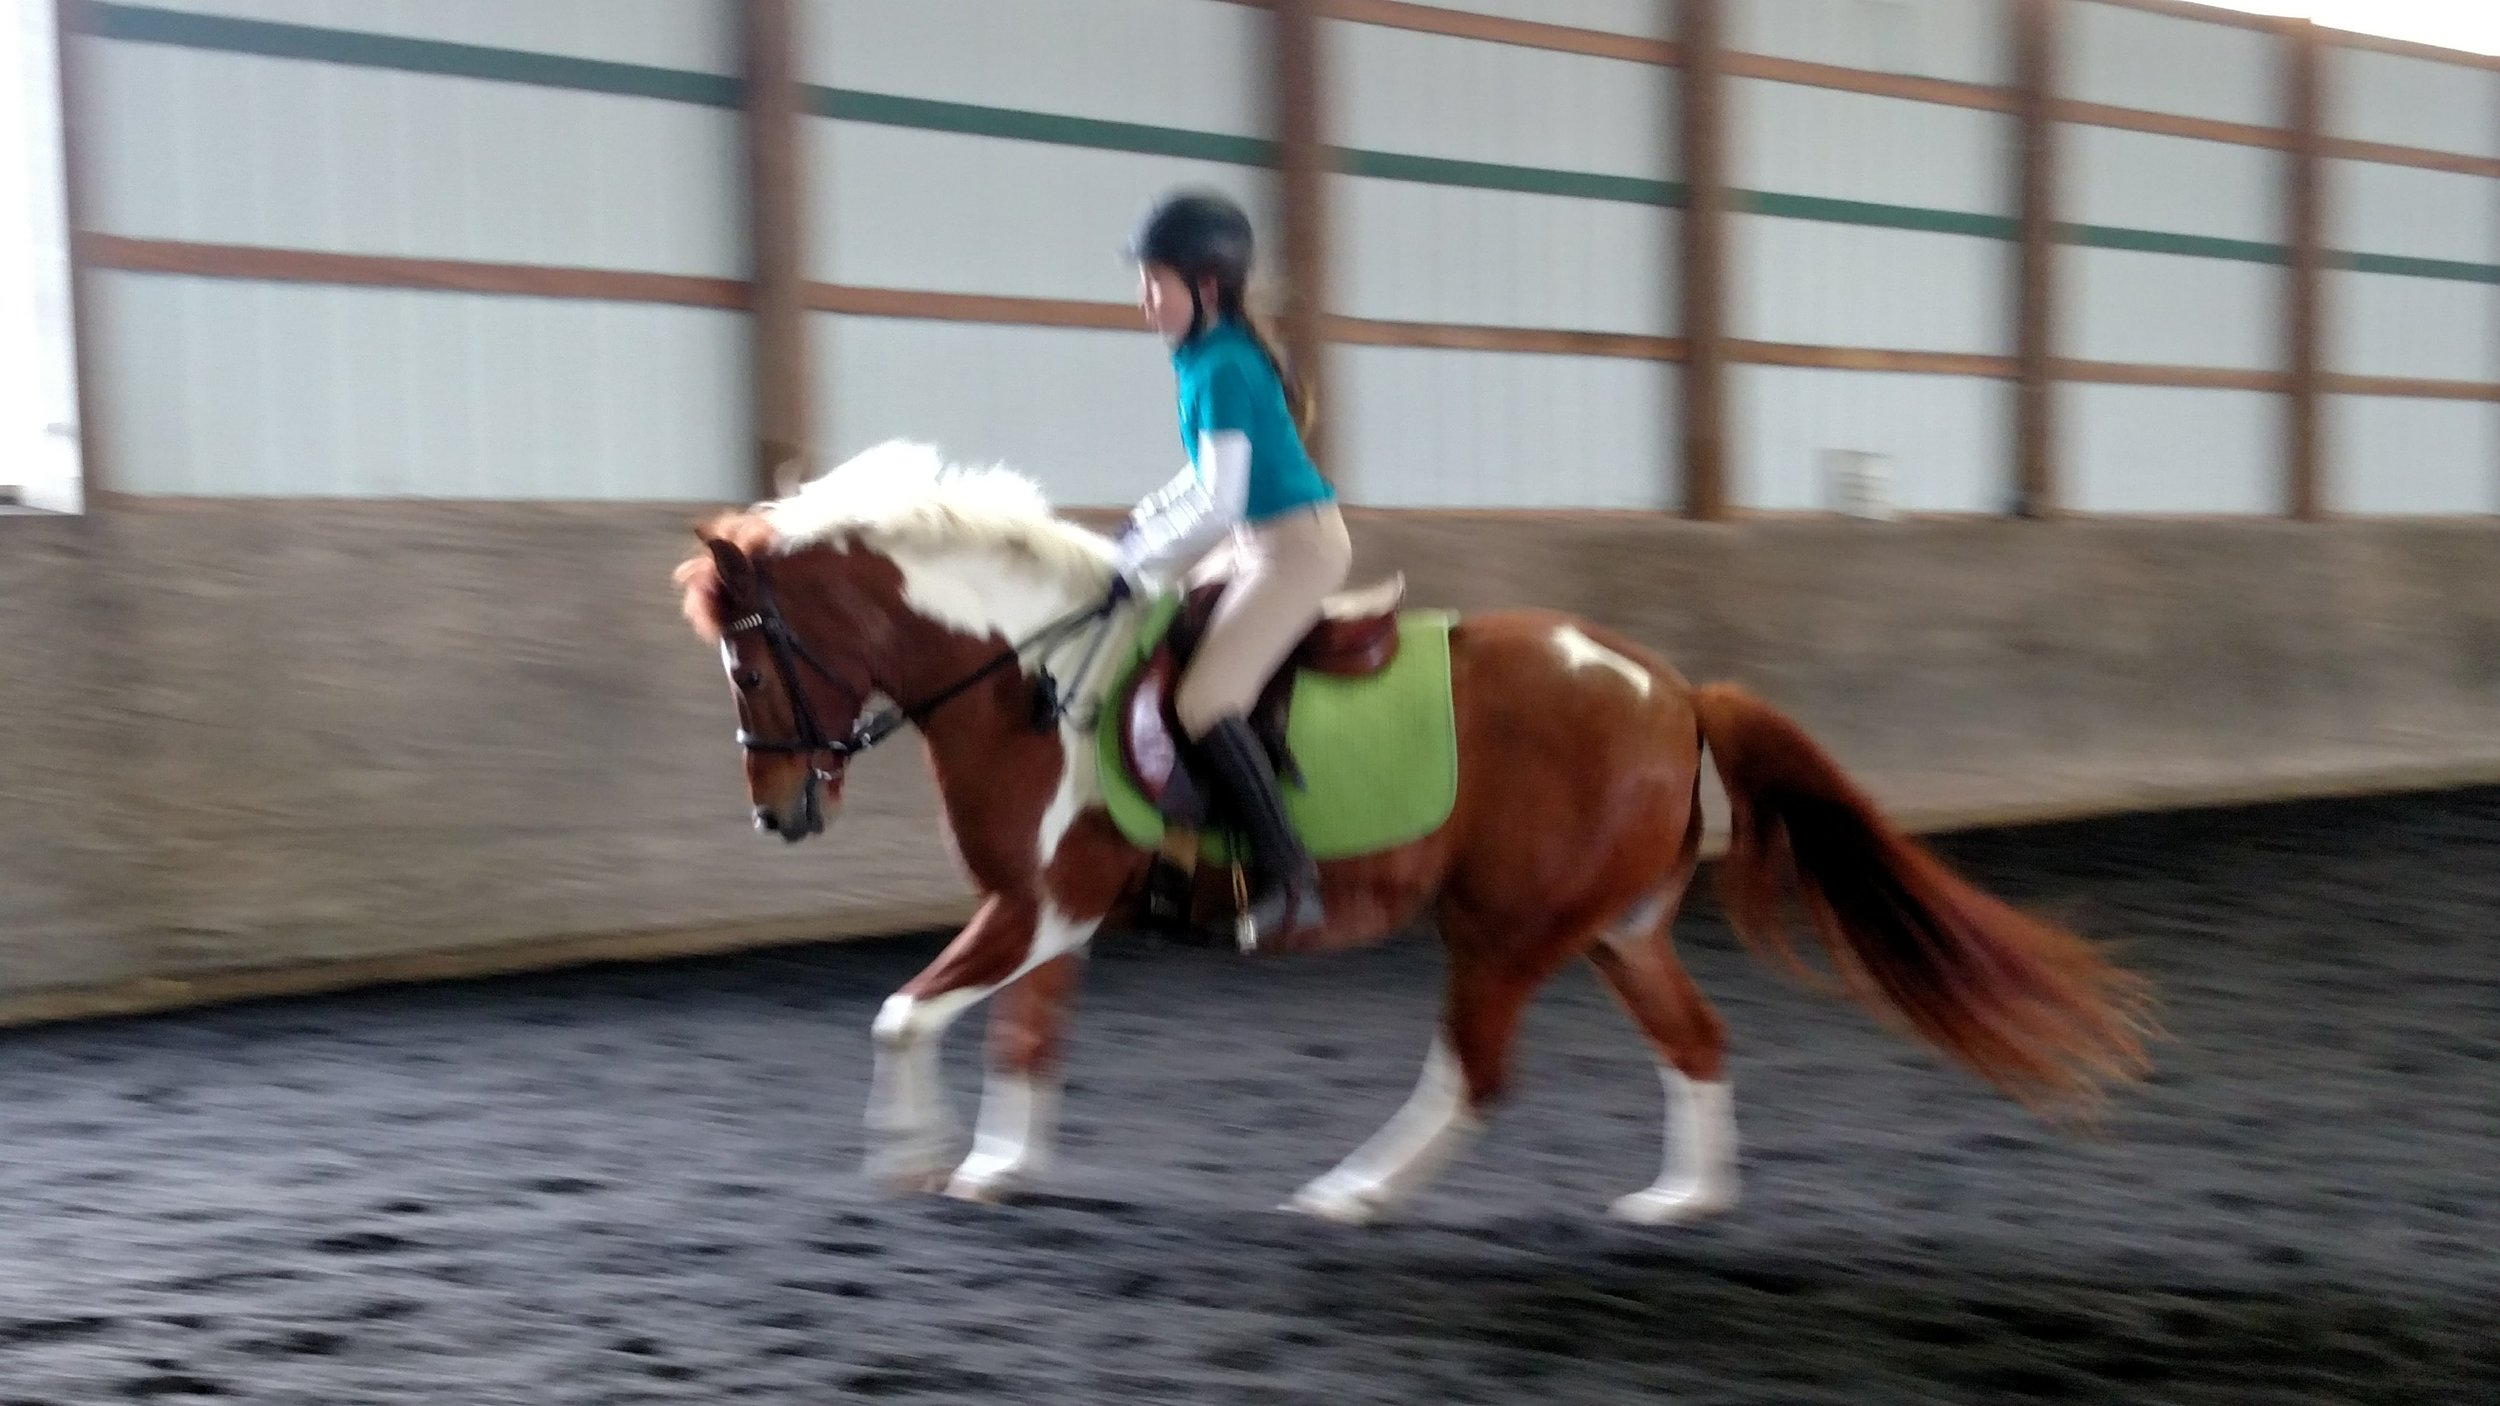 SaraKate worked very hard to get her middle to not be so wobbly, and did a great job!